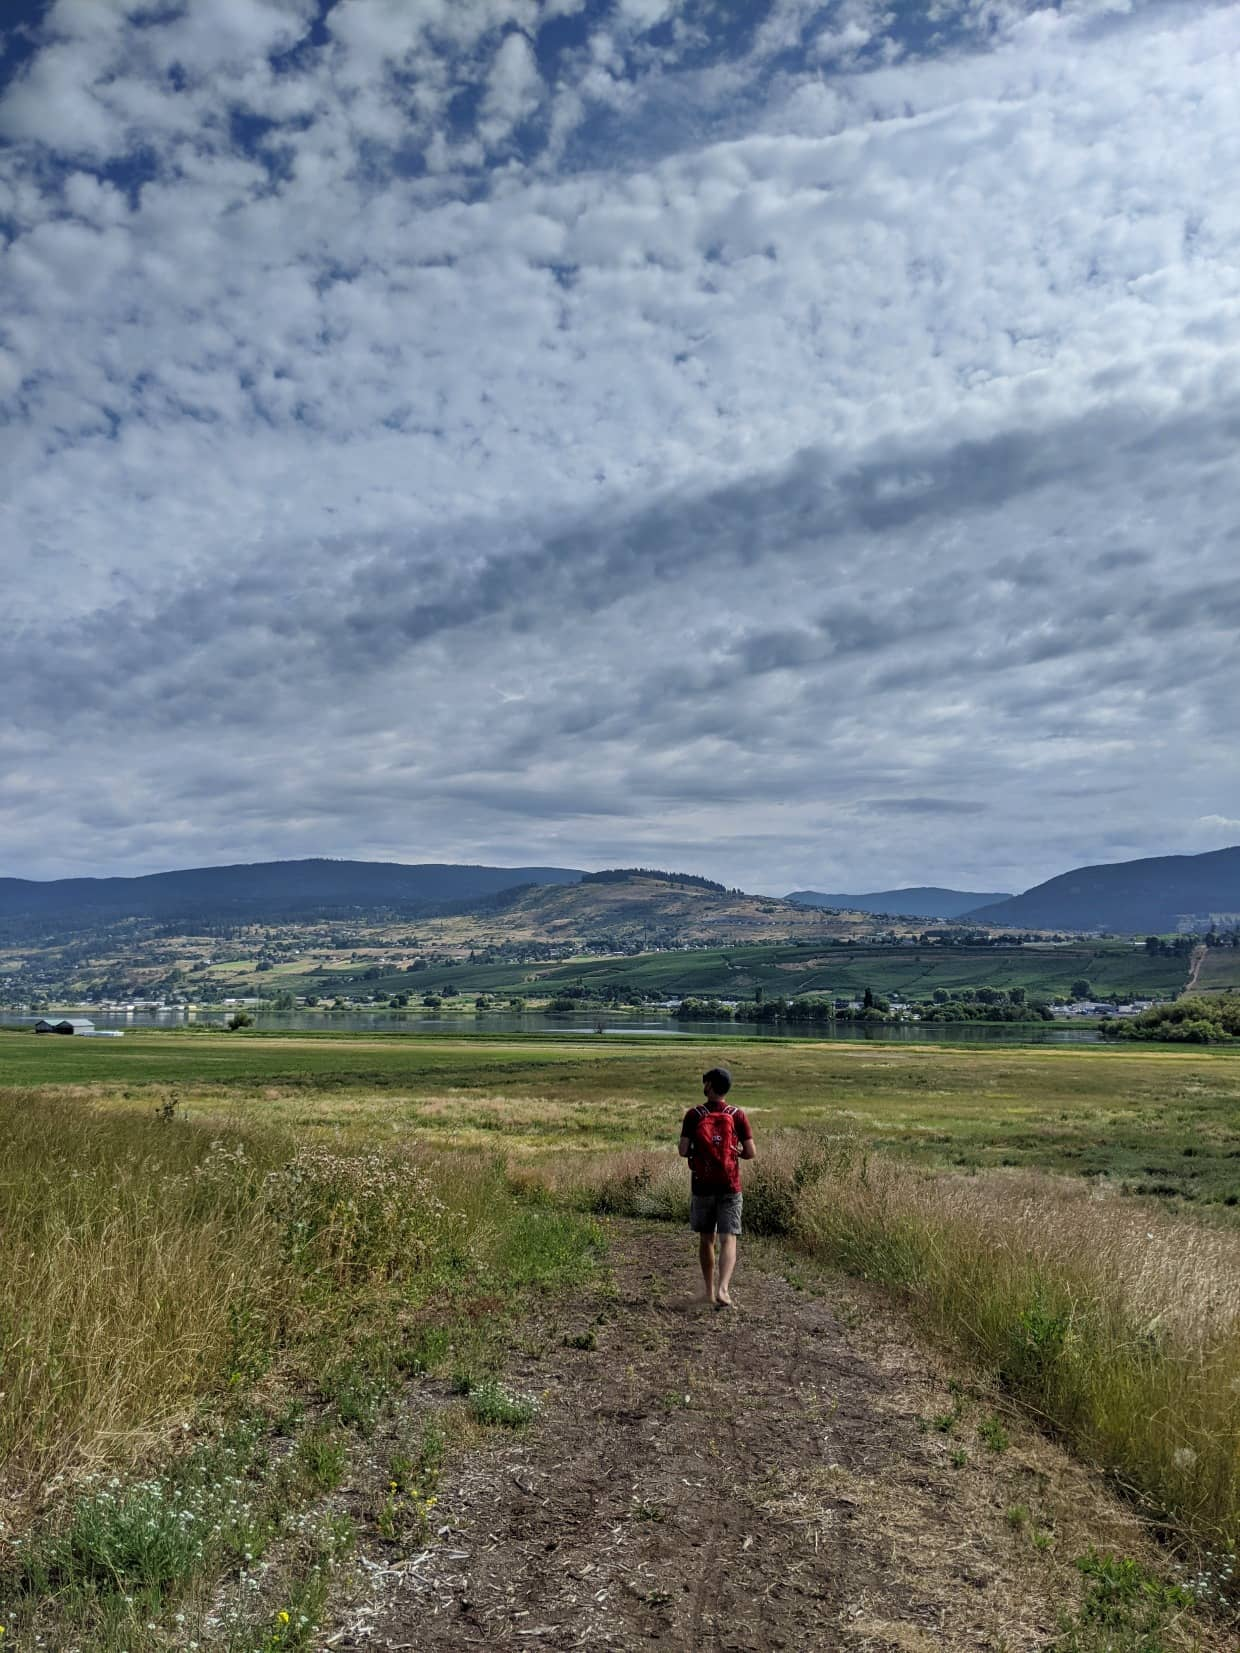 JR walking away from camera on dirt path with Swan Lake, hills and vineyards in background